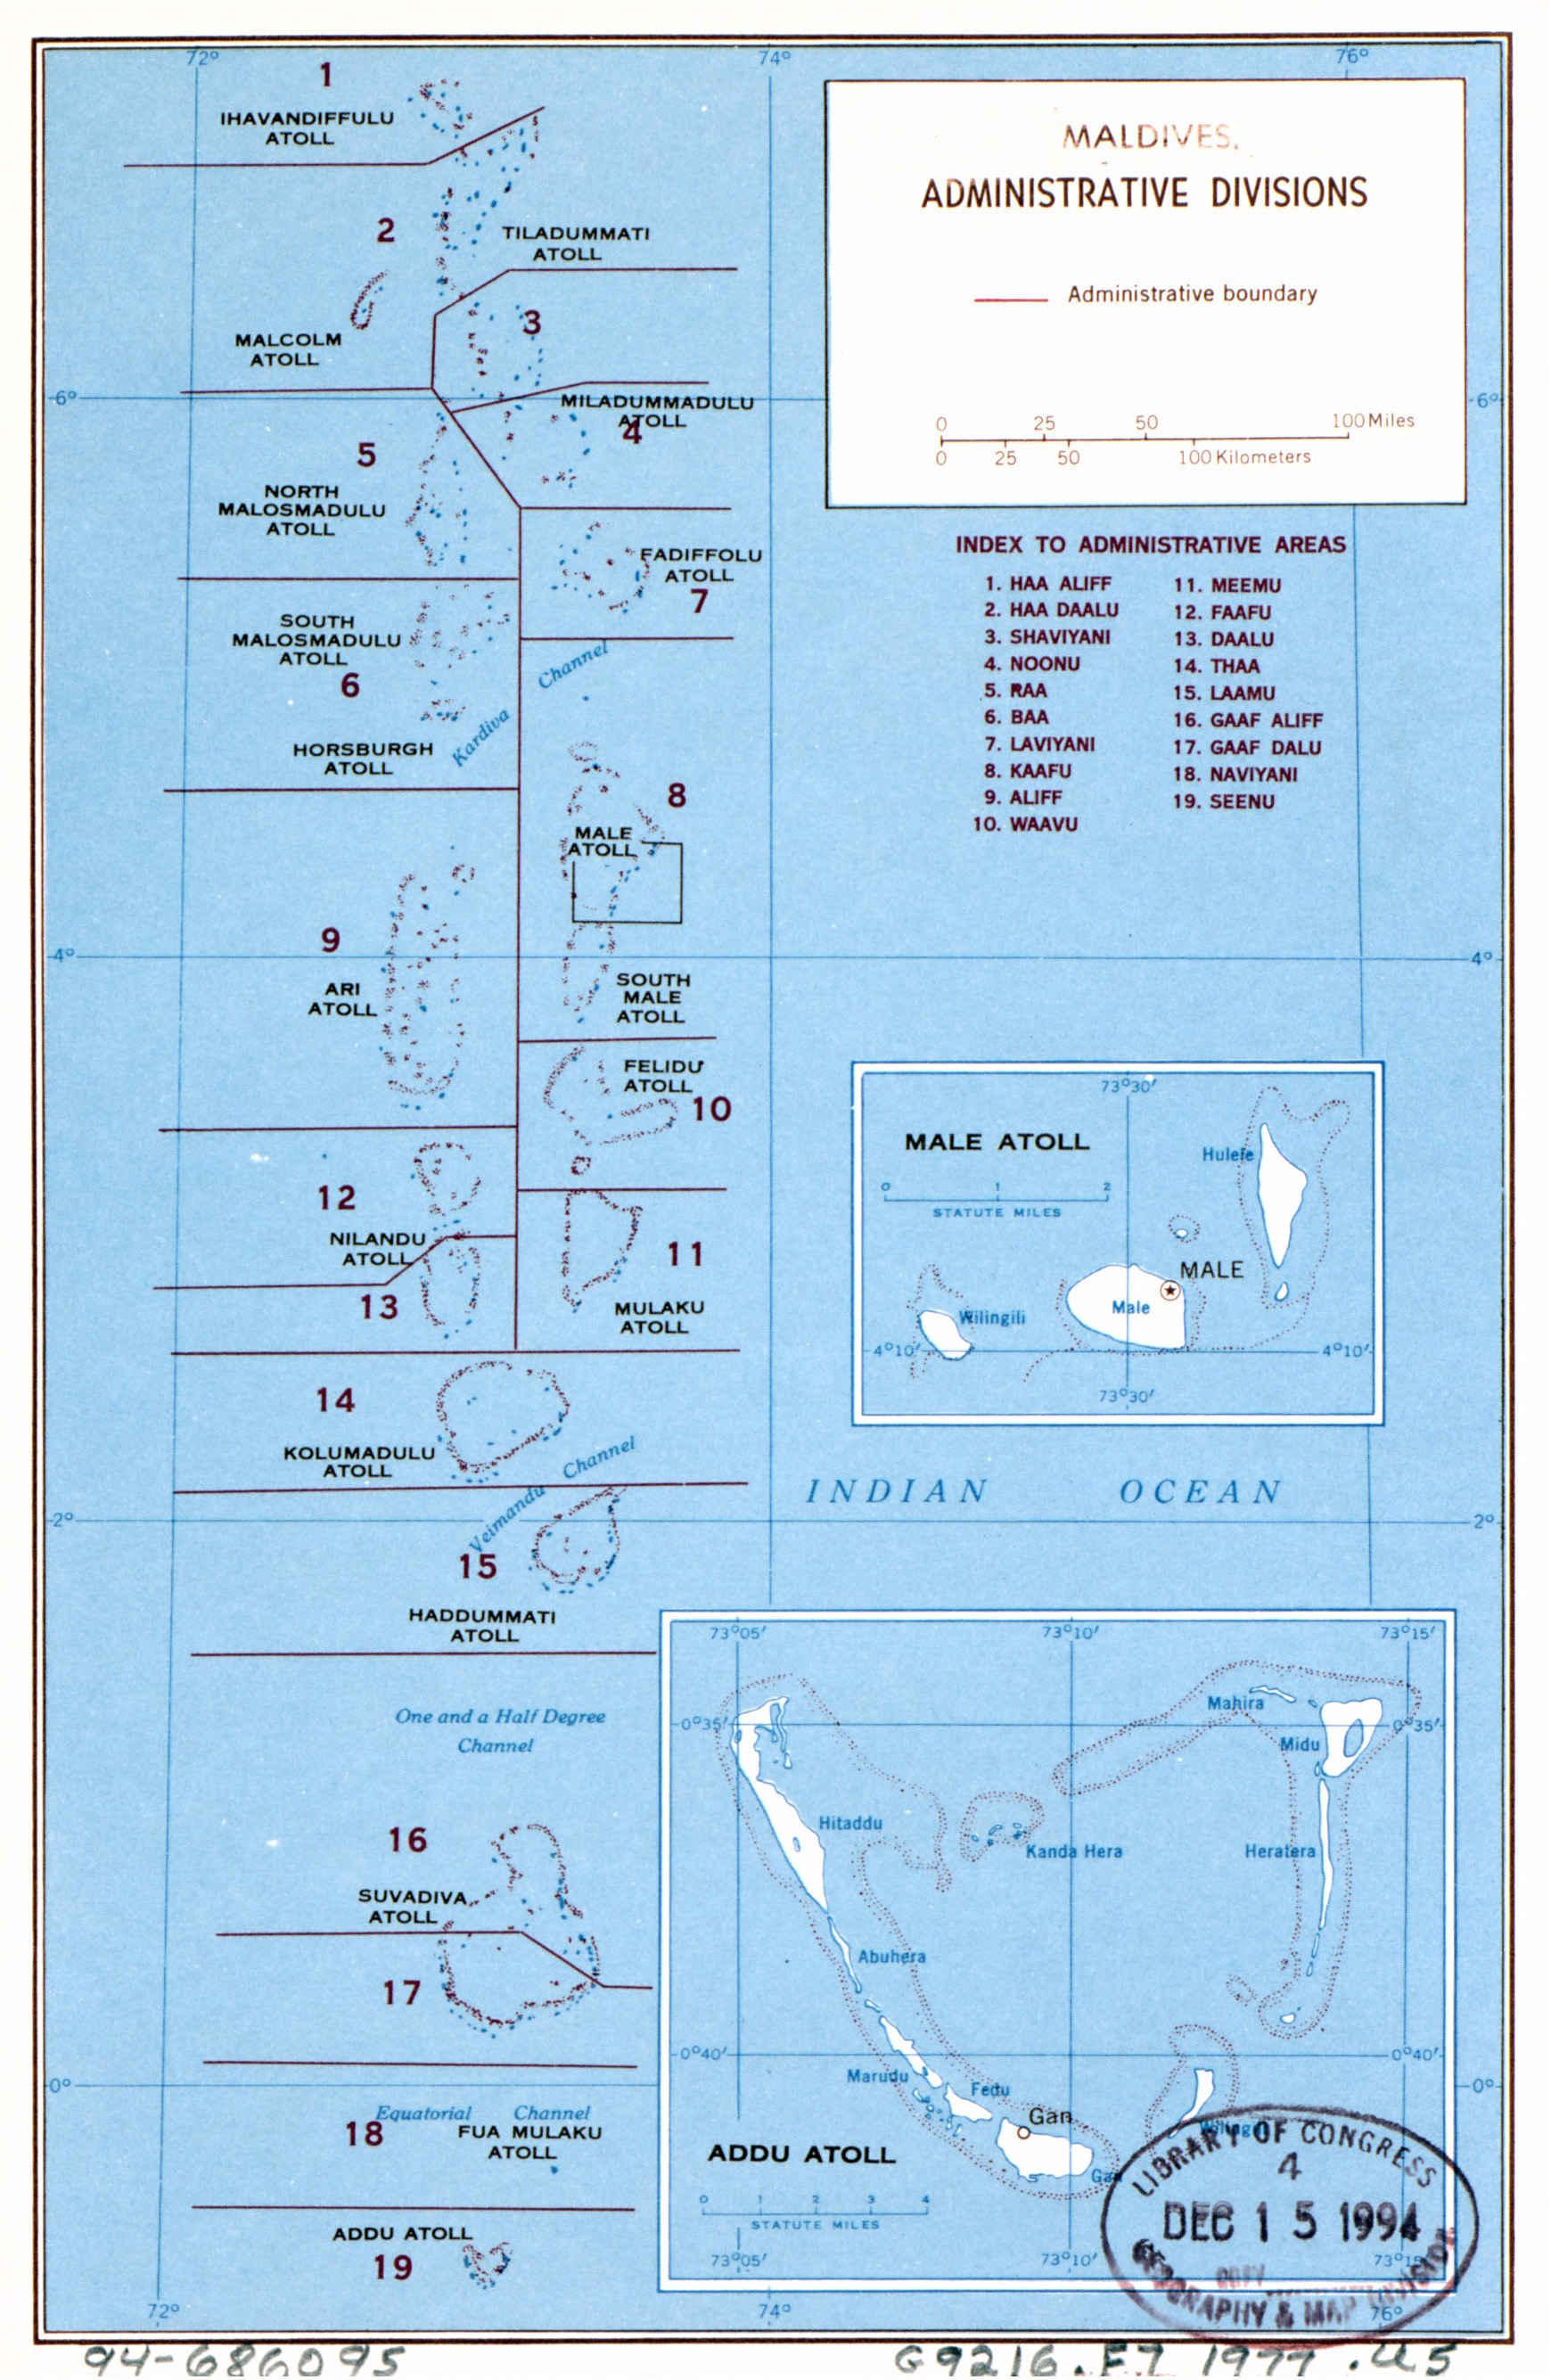 Large administrative divisions map of Maldives 1977 Maldives